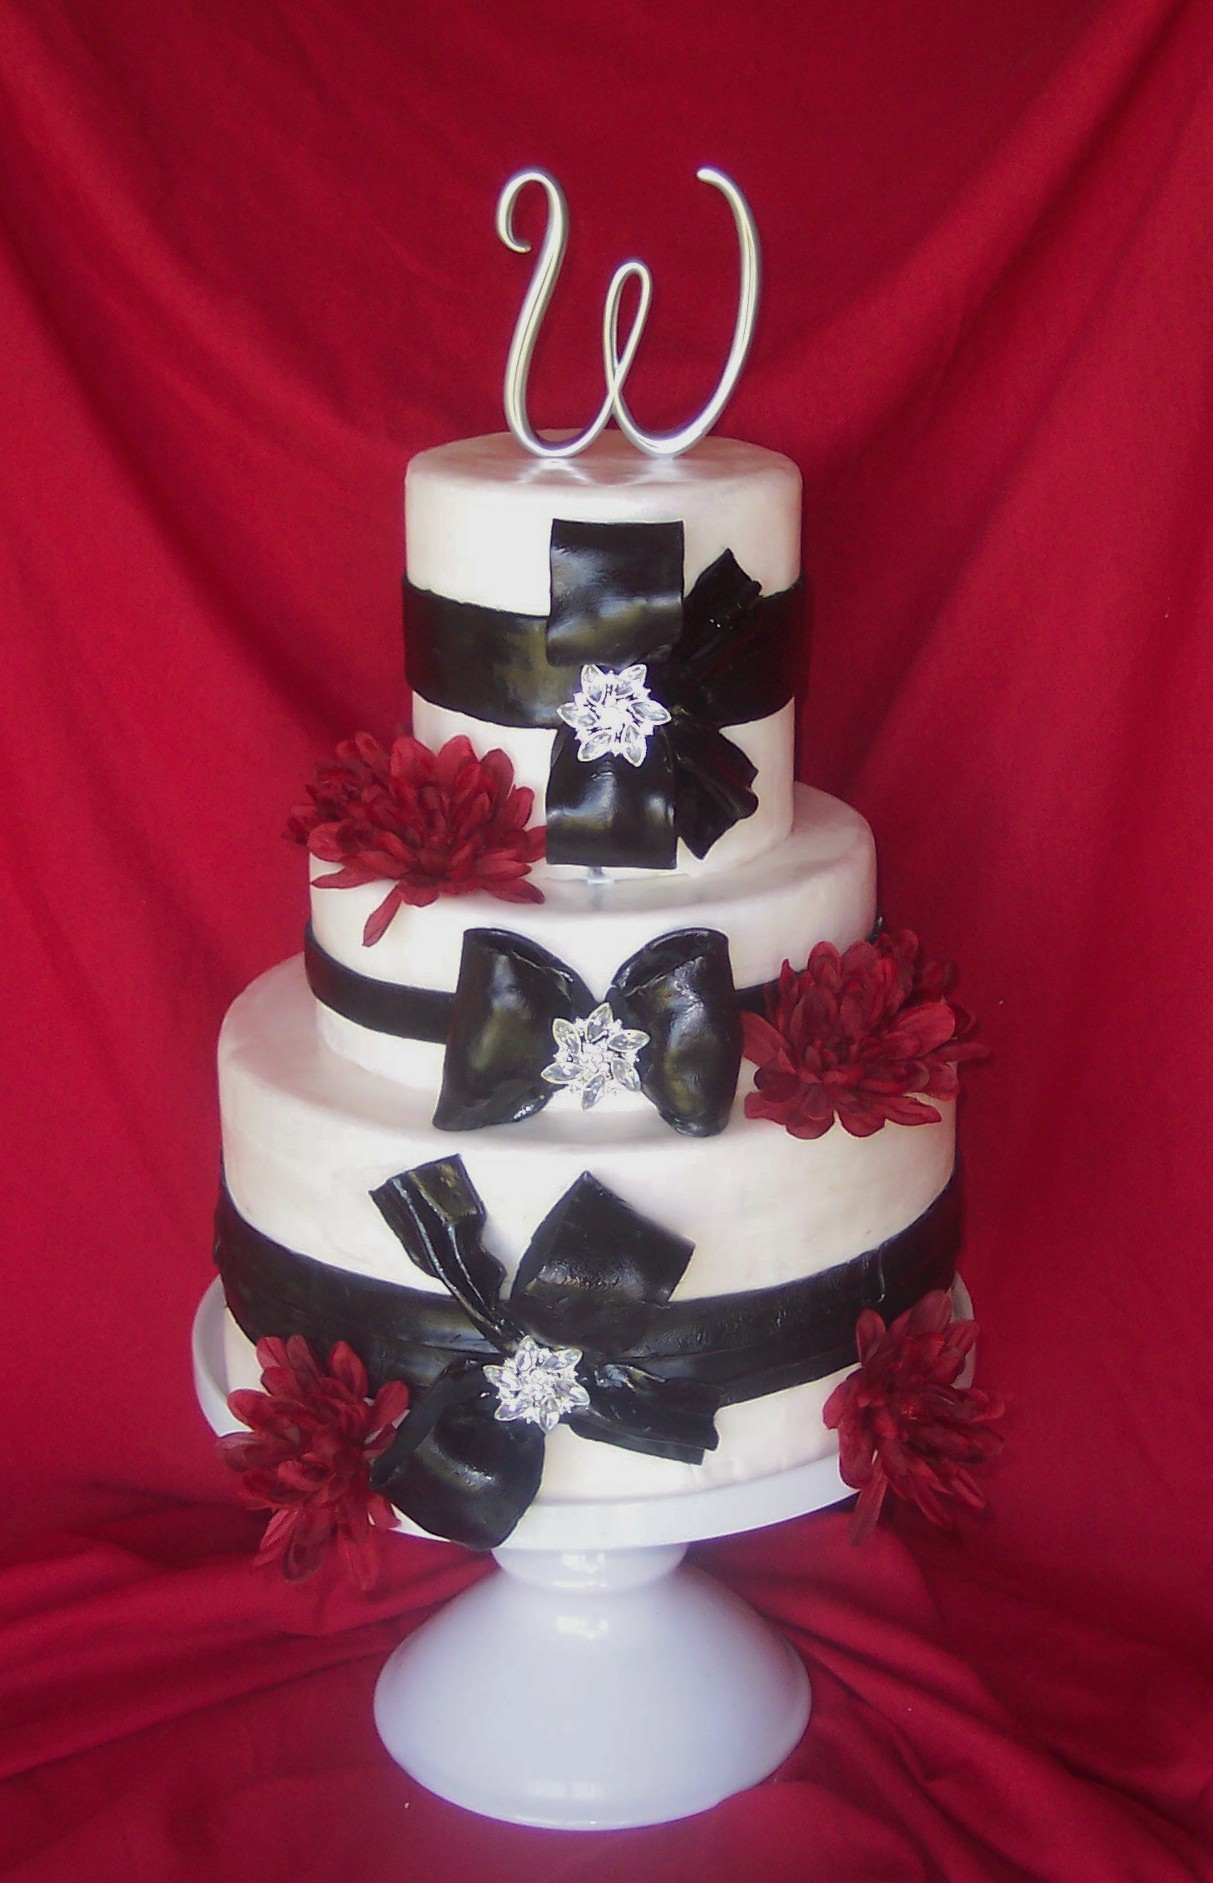 Jewelry, Cakes, white, red, black, cake, Brooches, Round, Wedding, Fondant, And, Brooch, Bows, Bling, Patty cakes llc